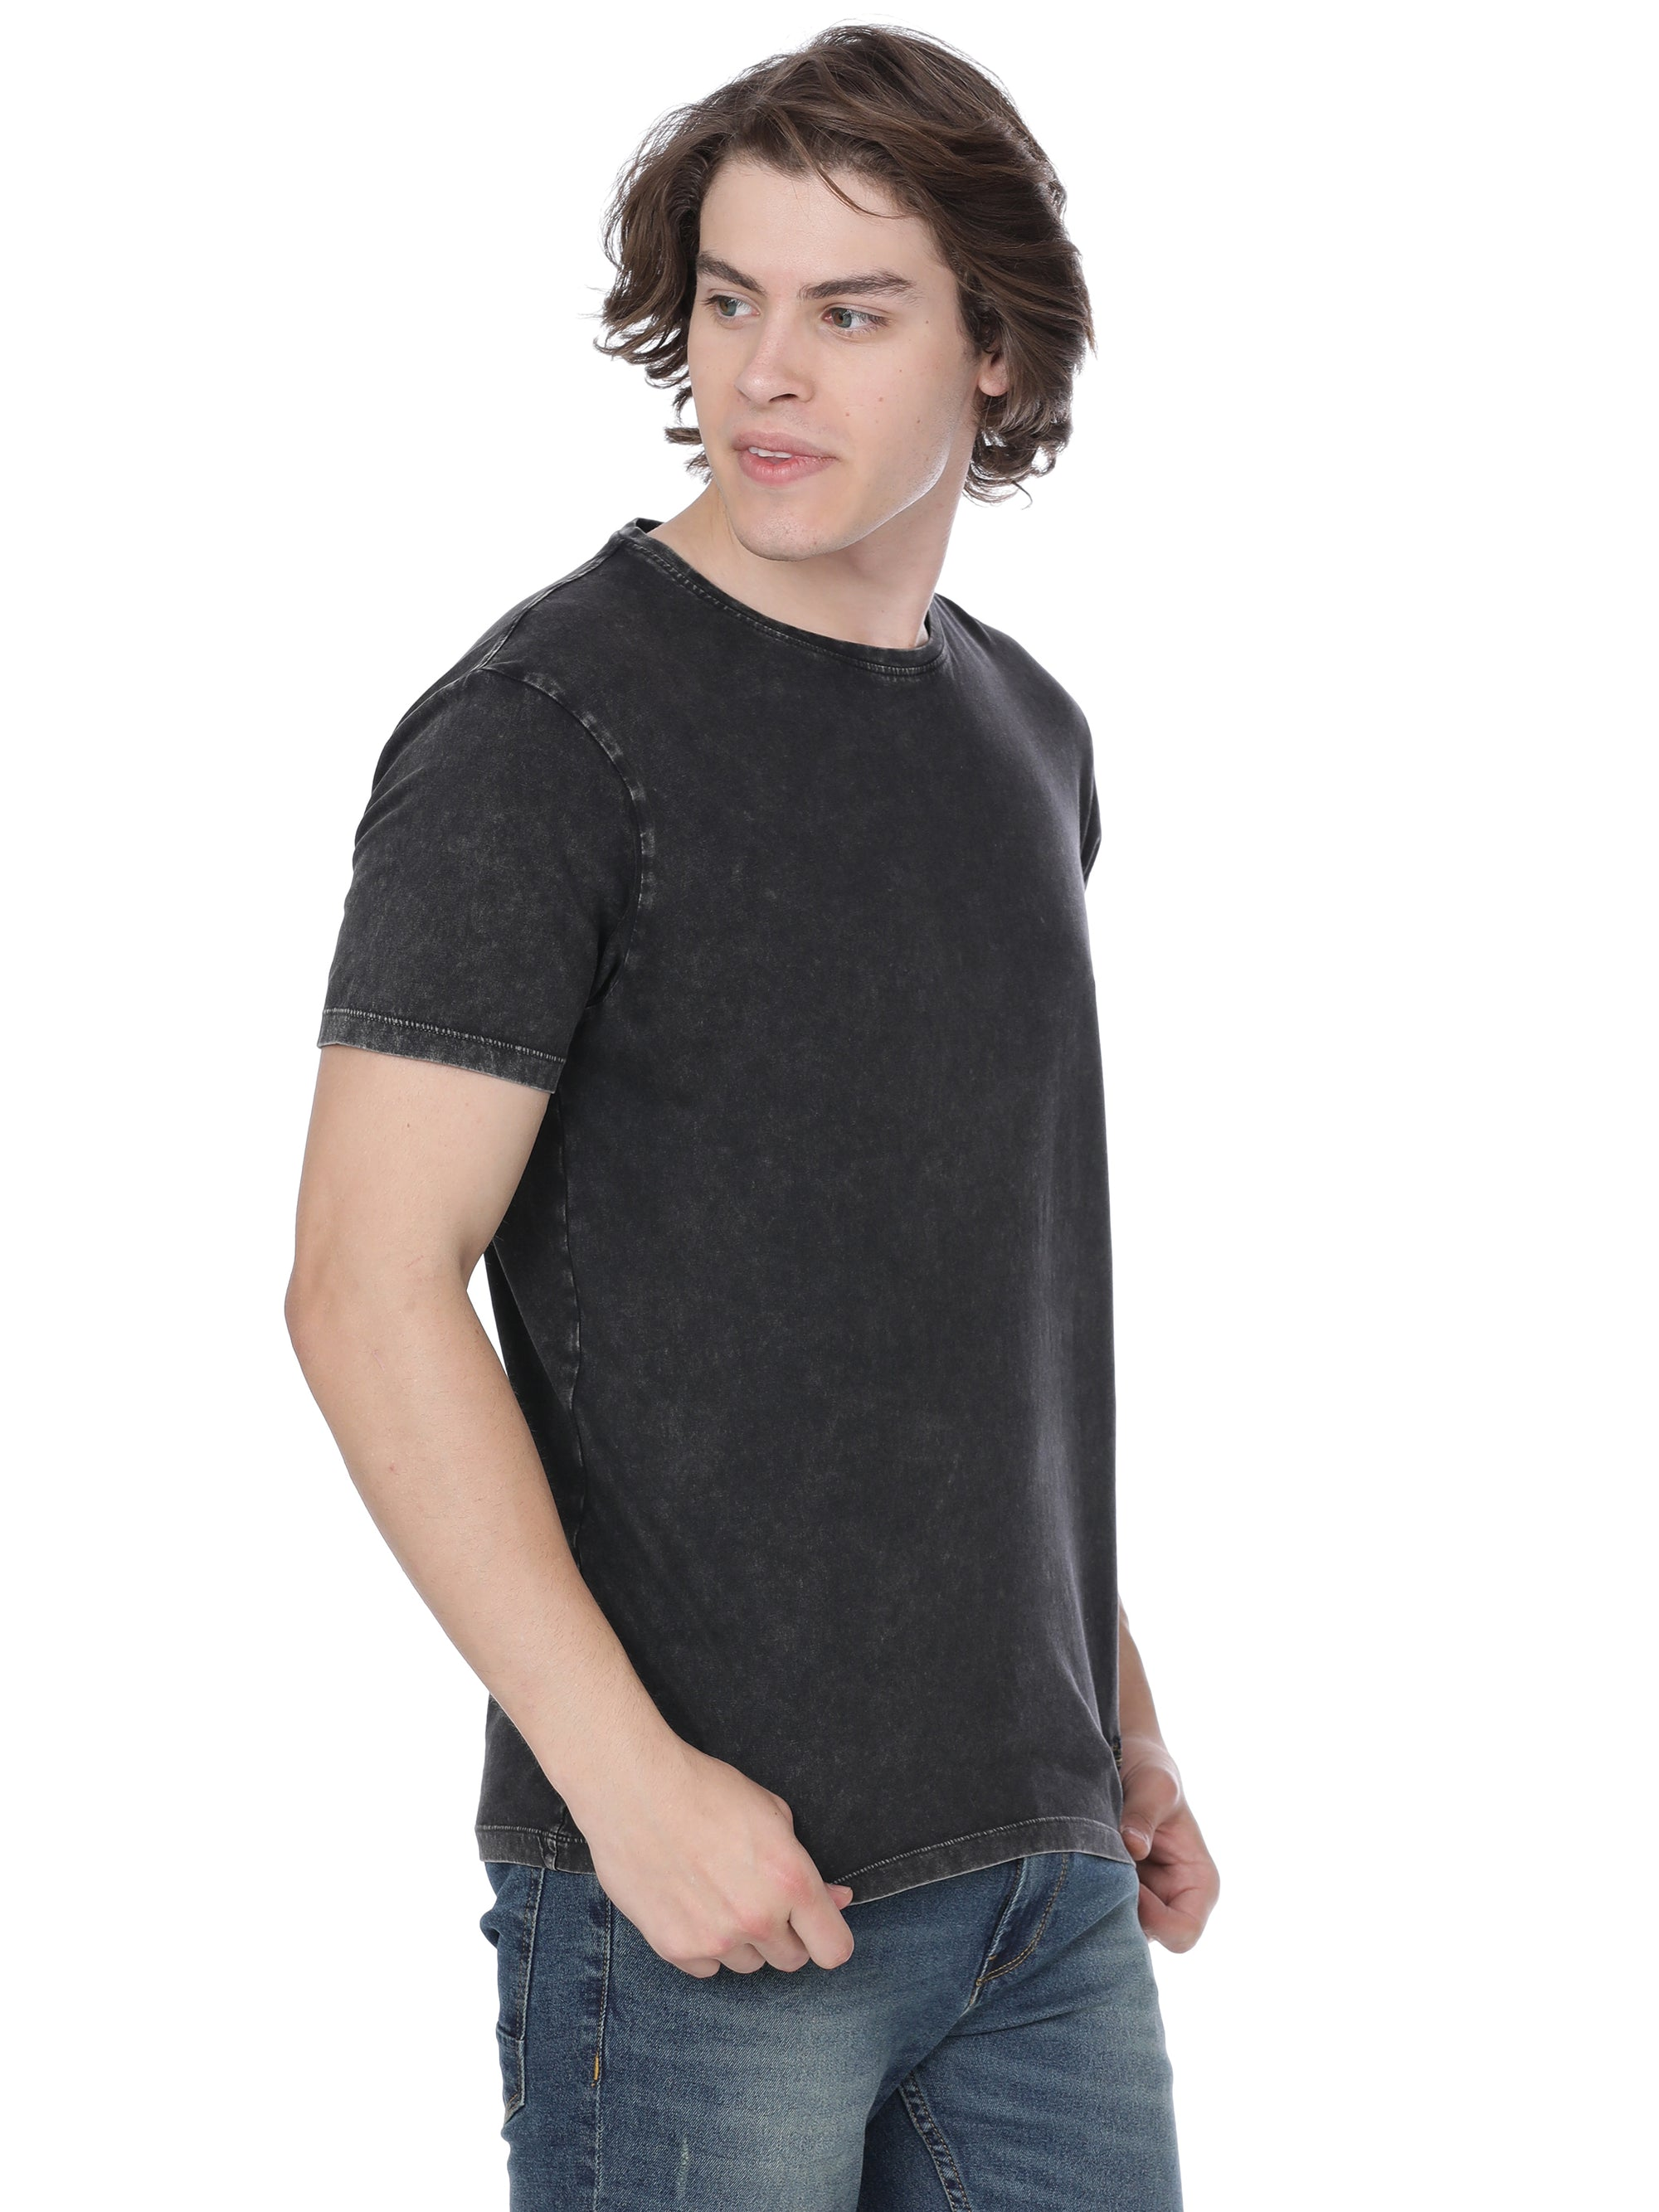 Black t-shirt with back print - Voi Jeans Pant Online